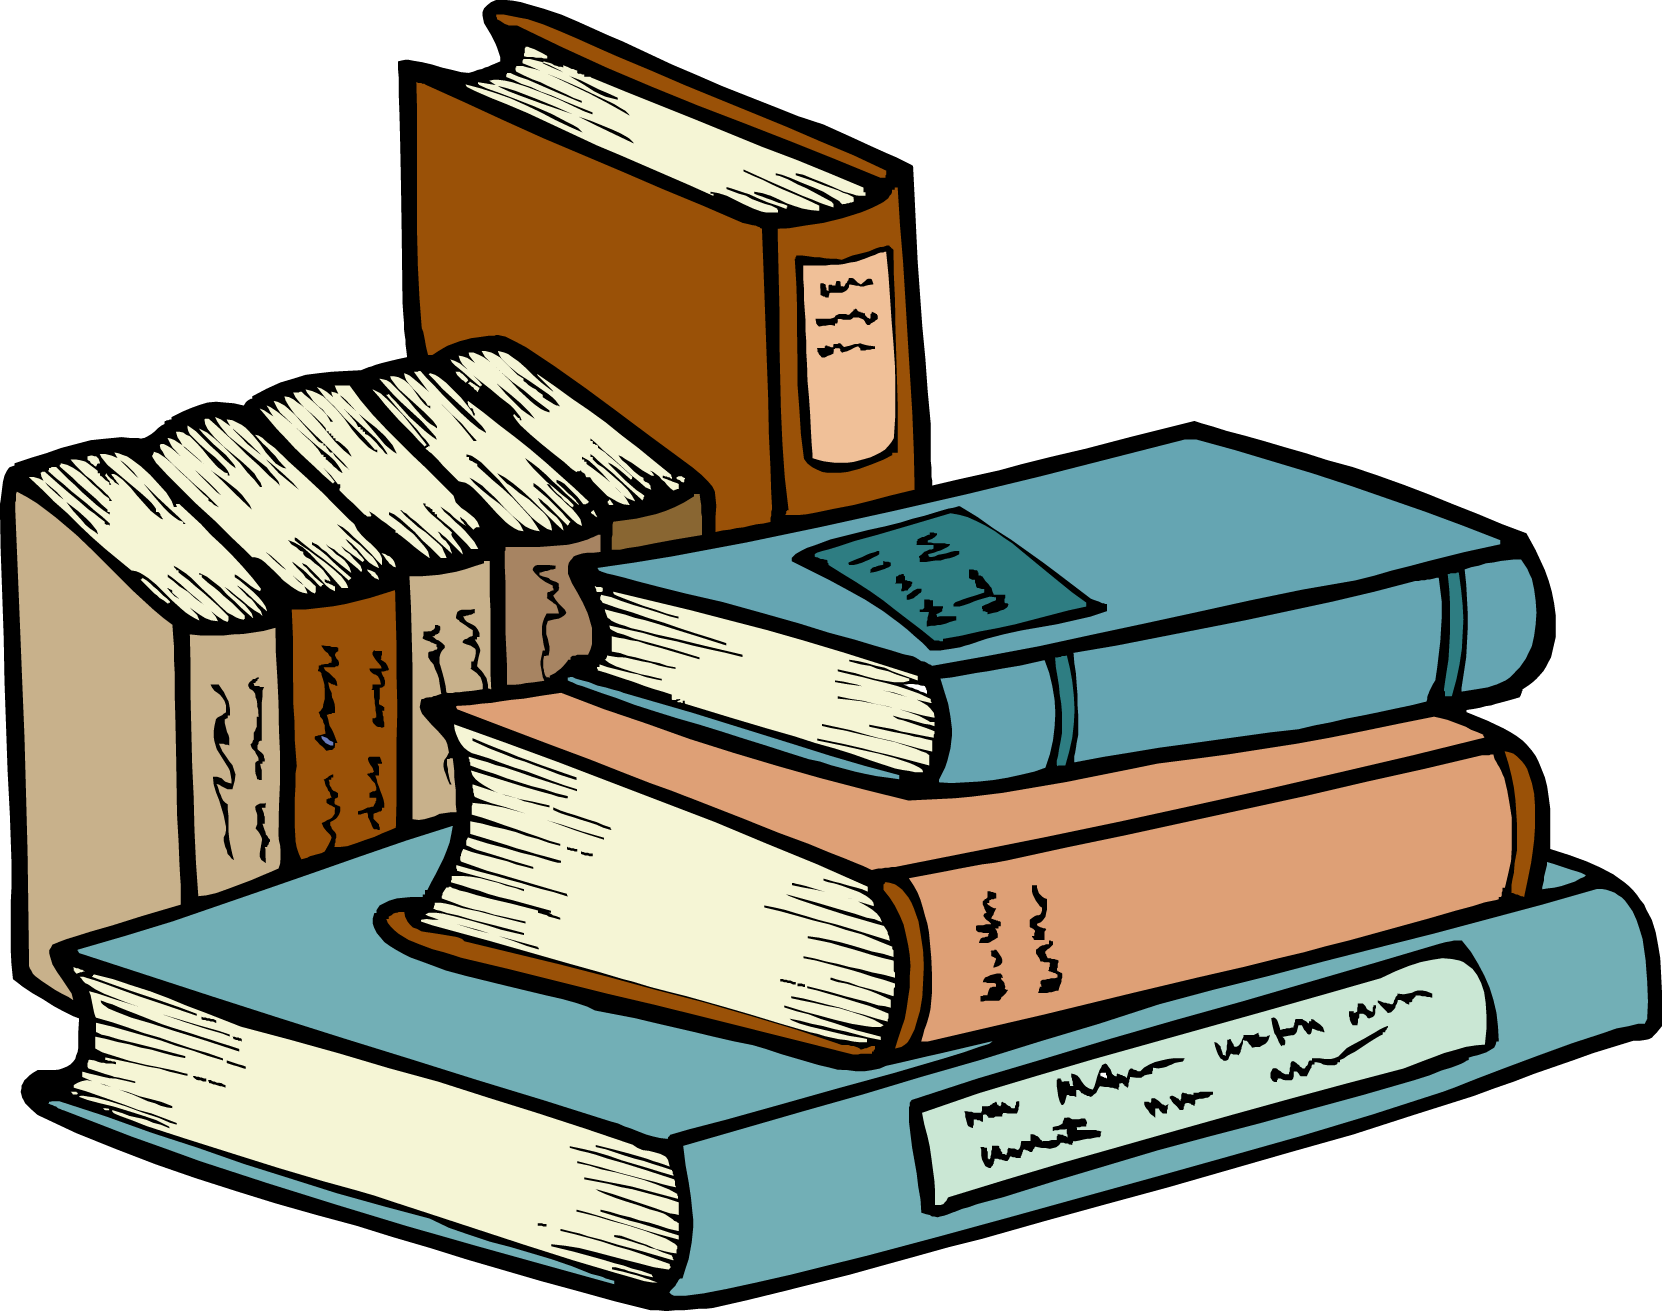 Book cartoon png. Fair clipart at getdrawings